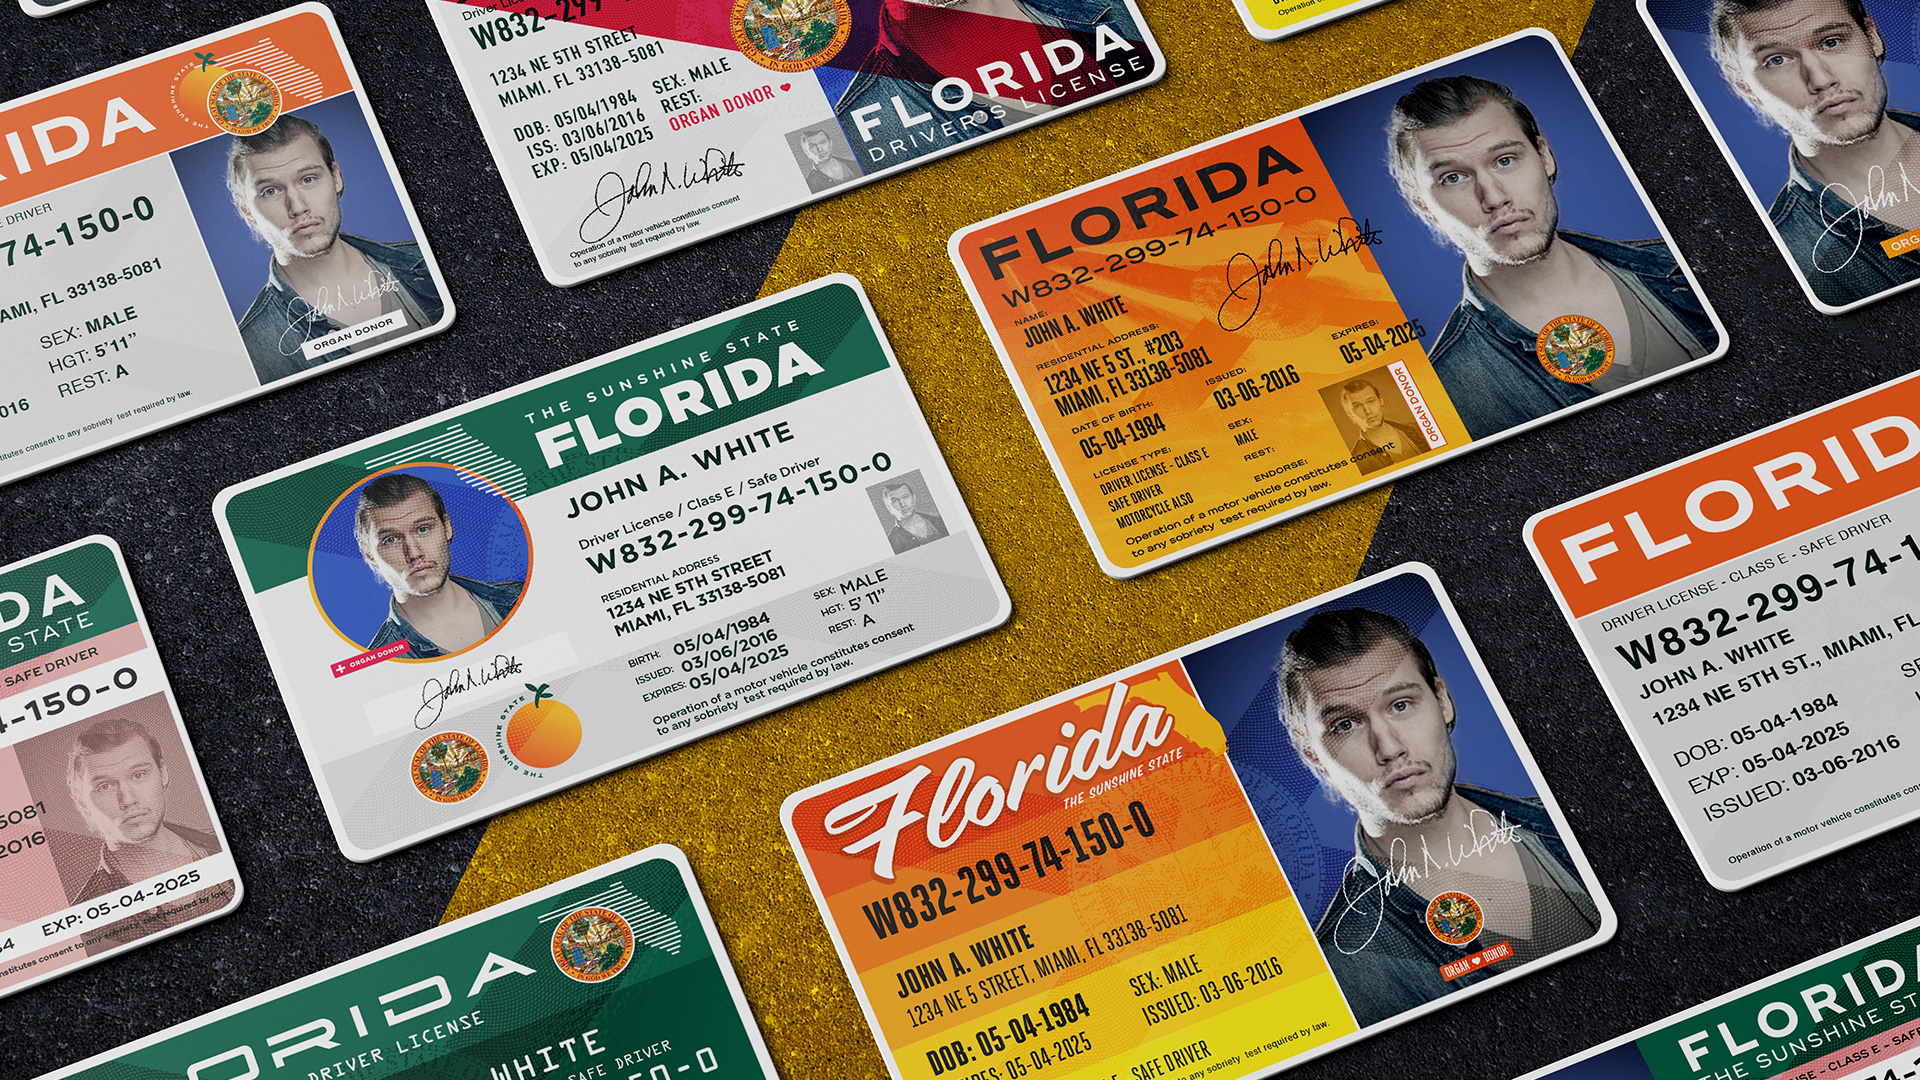 what does restriction b mean on drivers license in florida